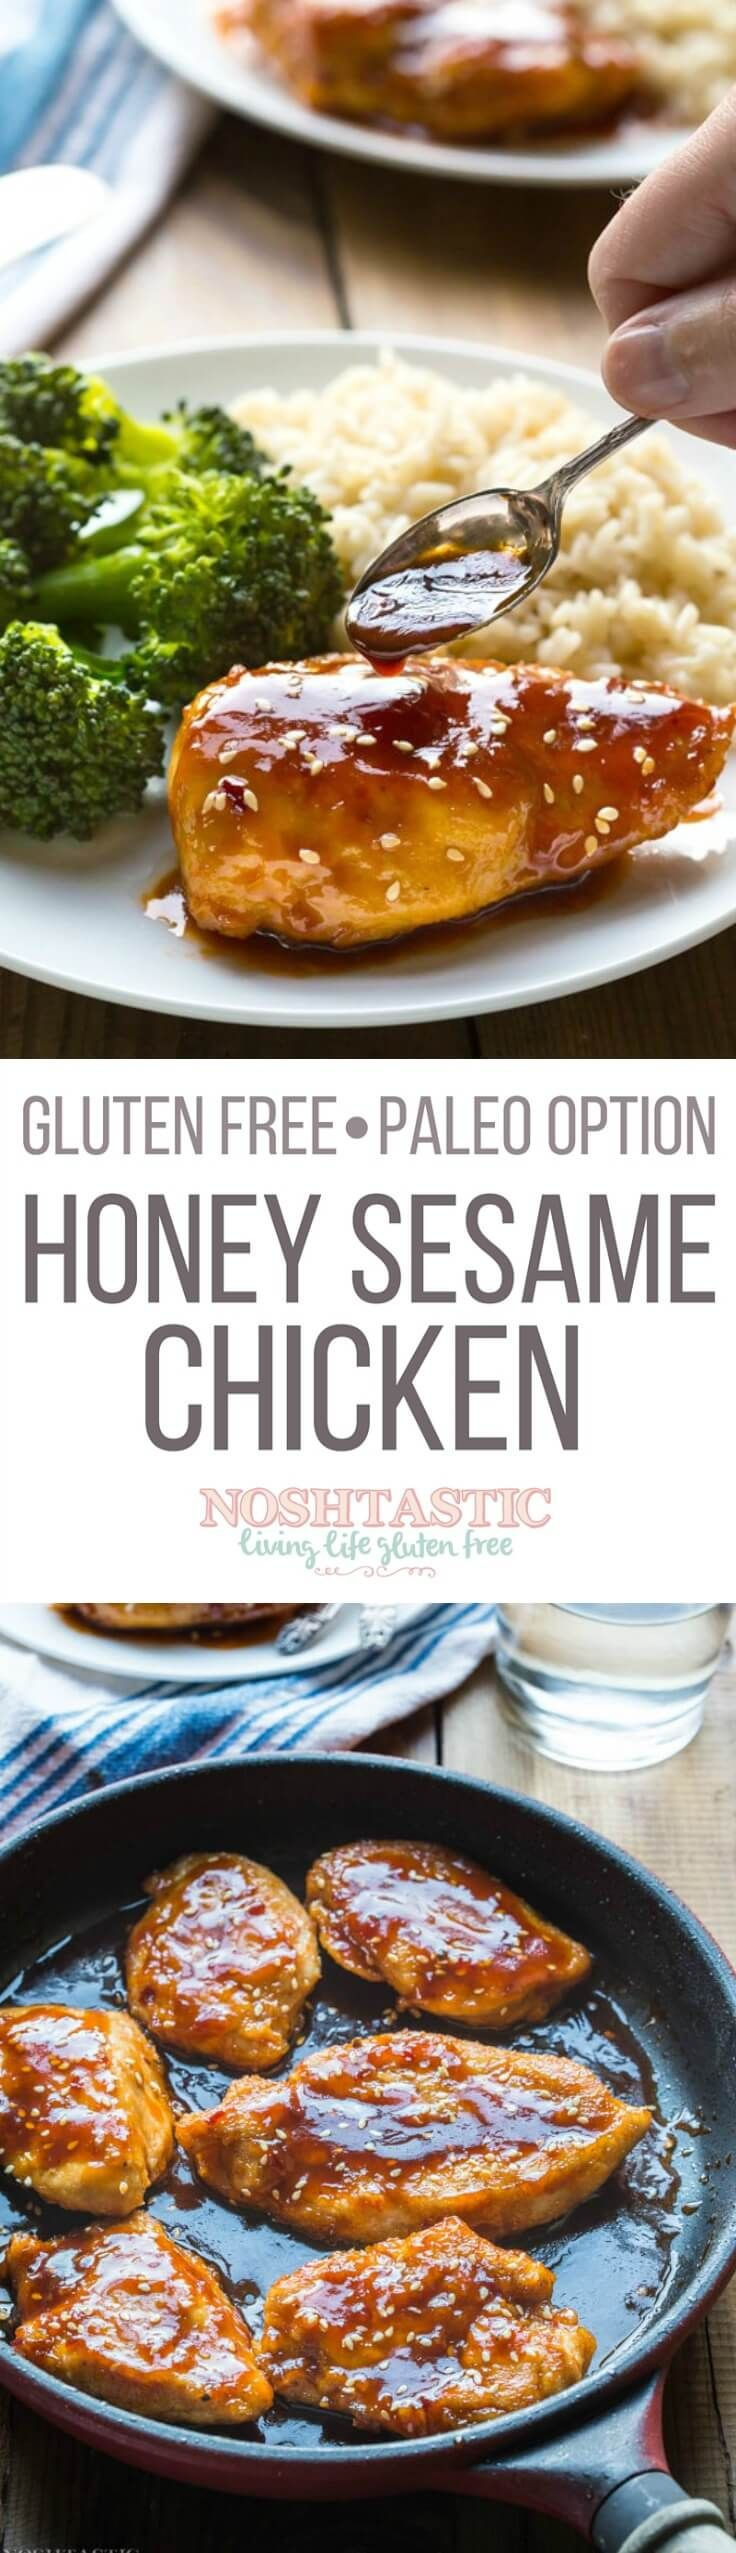 Quick, easy, and healthy too! this Gluten Free Sesame Chicken with Honey recipe is a winner and it cooks in only 10 minutes, you'll love it and probably have all the ingredients already! With Paleo option | 475 Calories Per Serving |